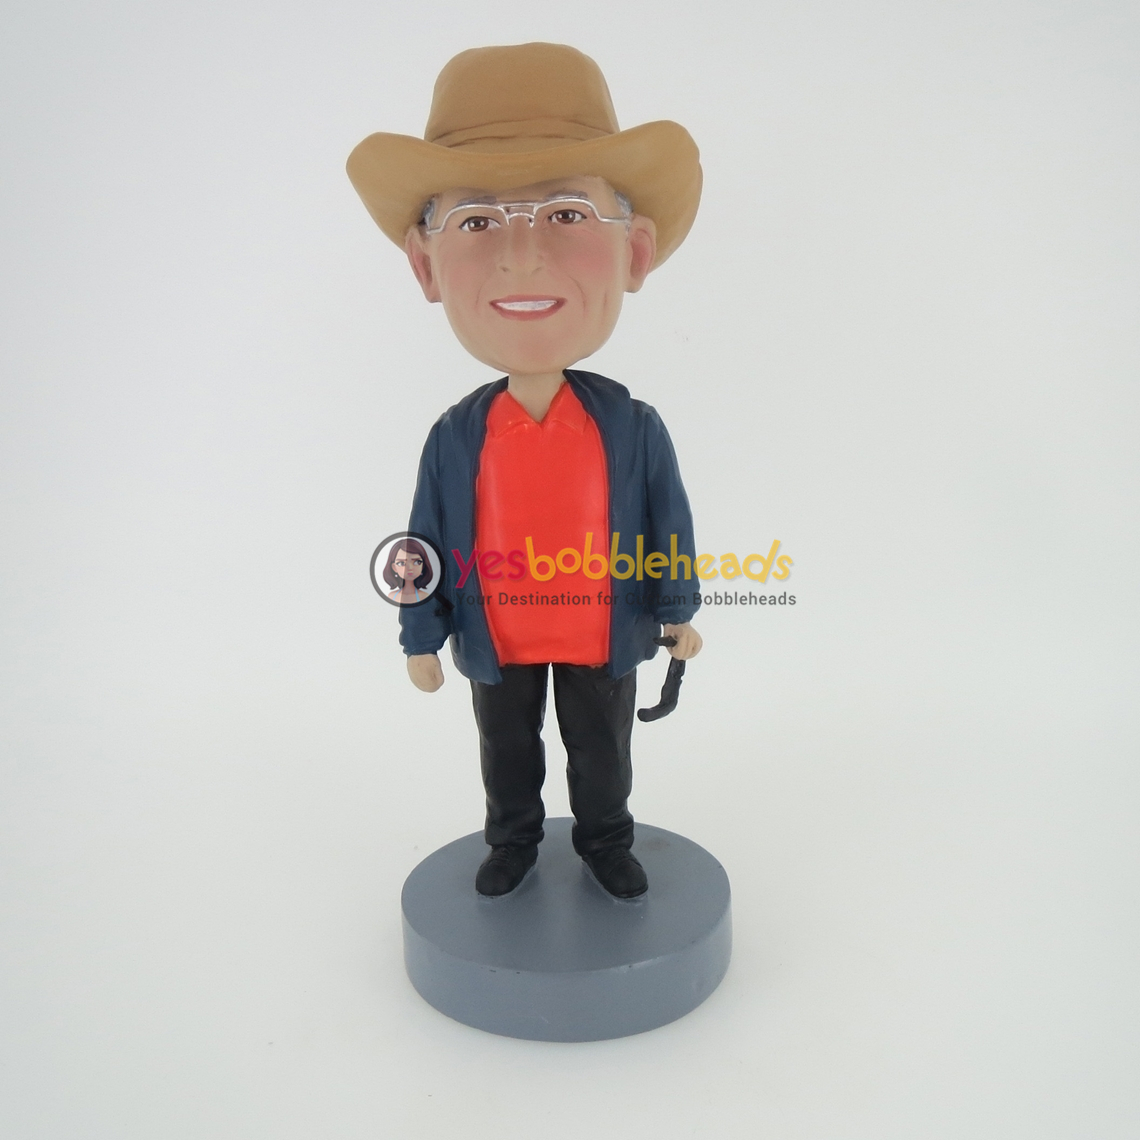 Picture of Custom Bobblehead Doll: Casual Cowboy